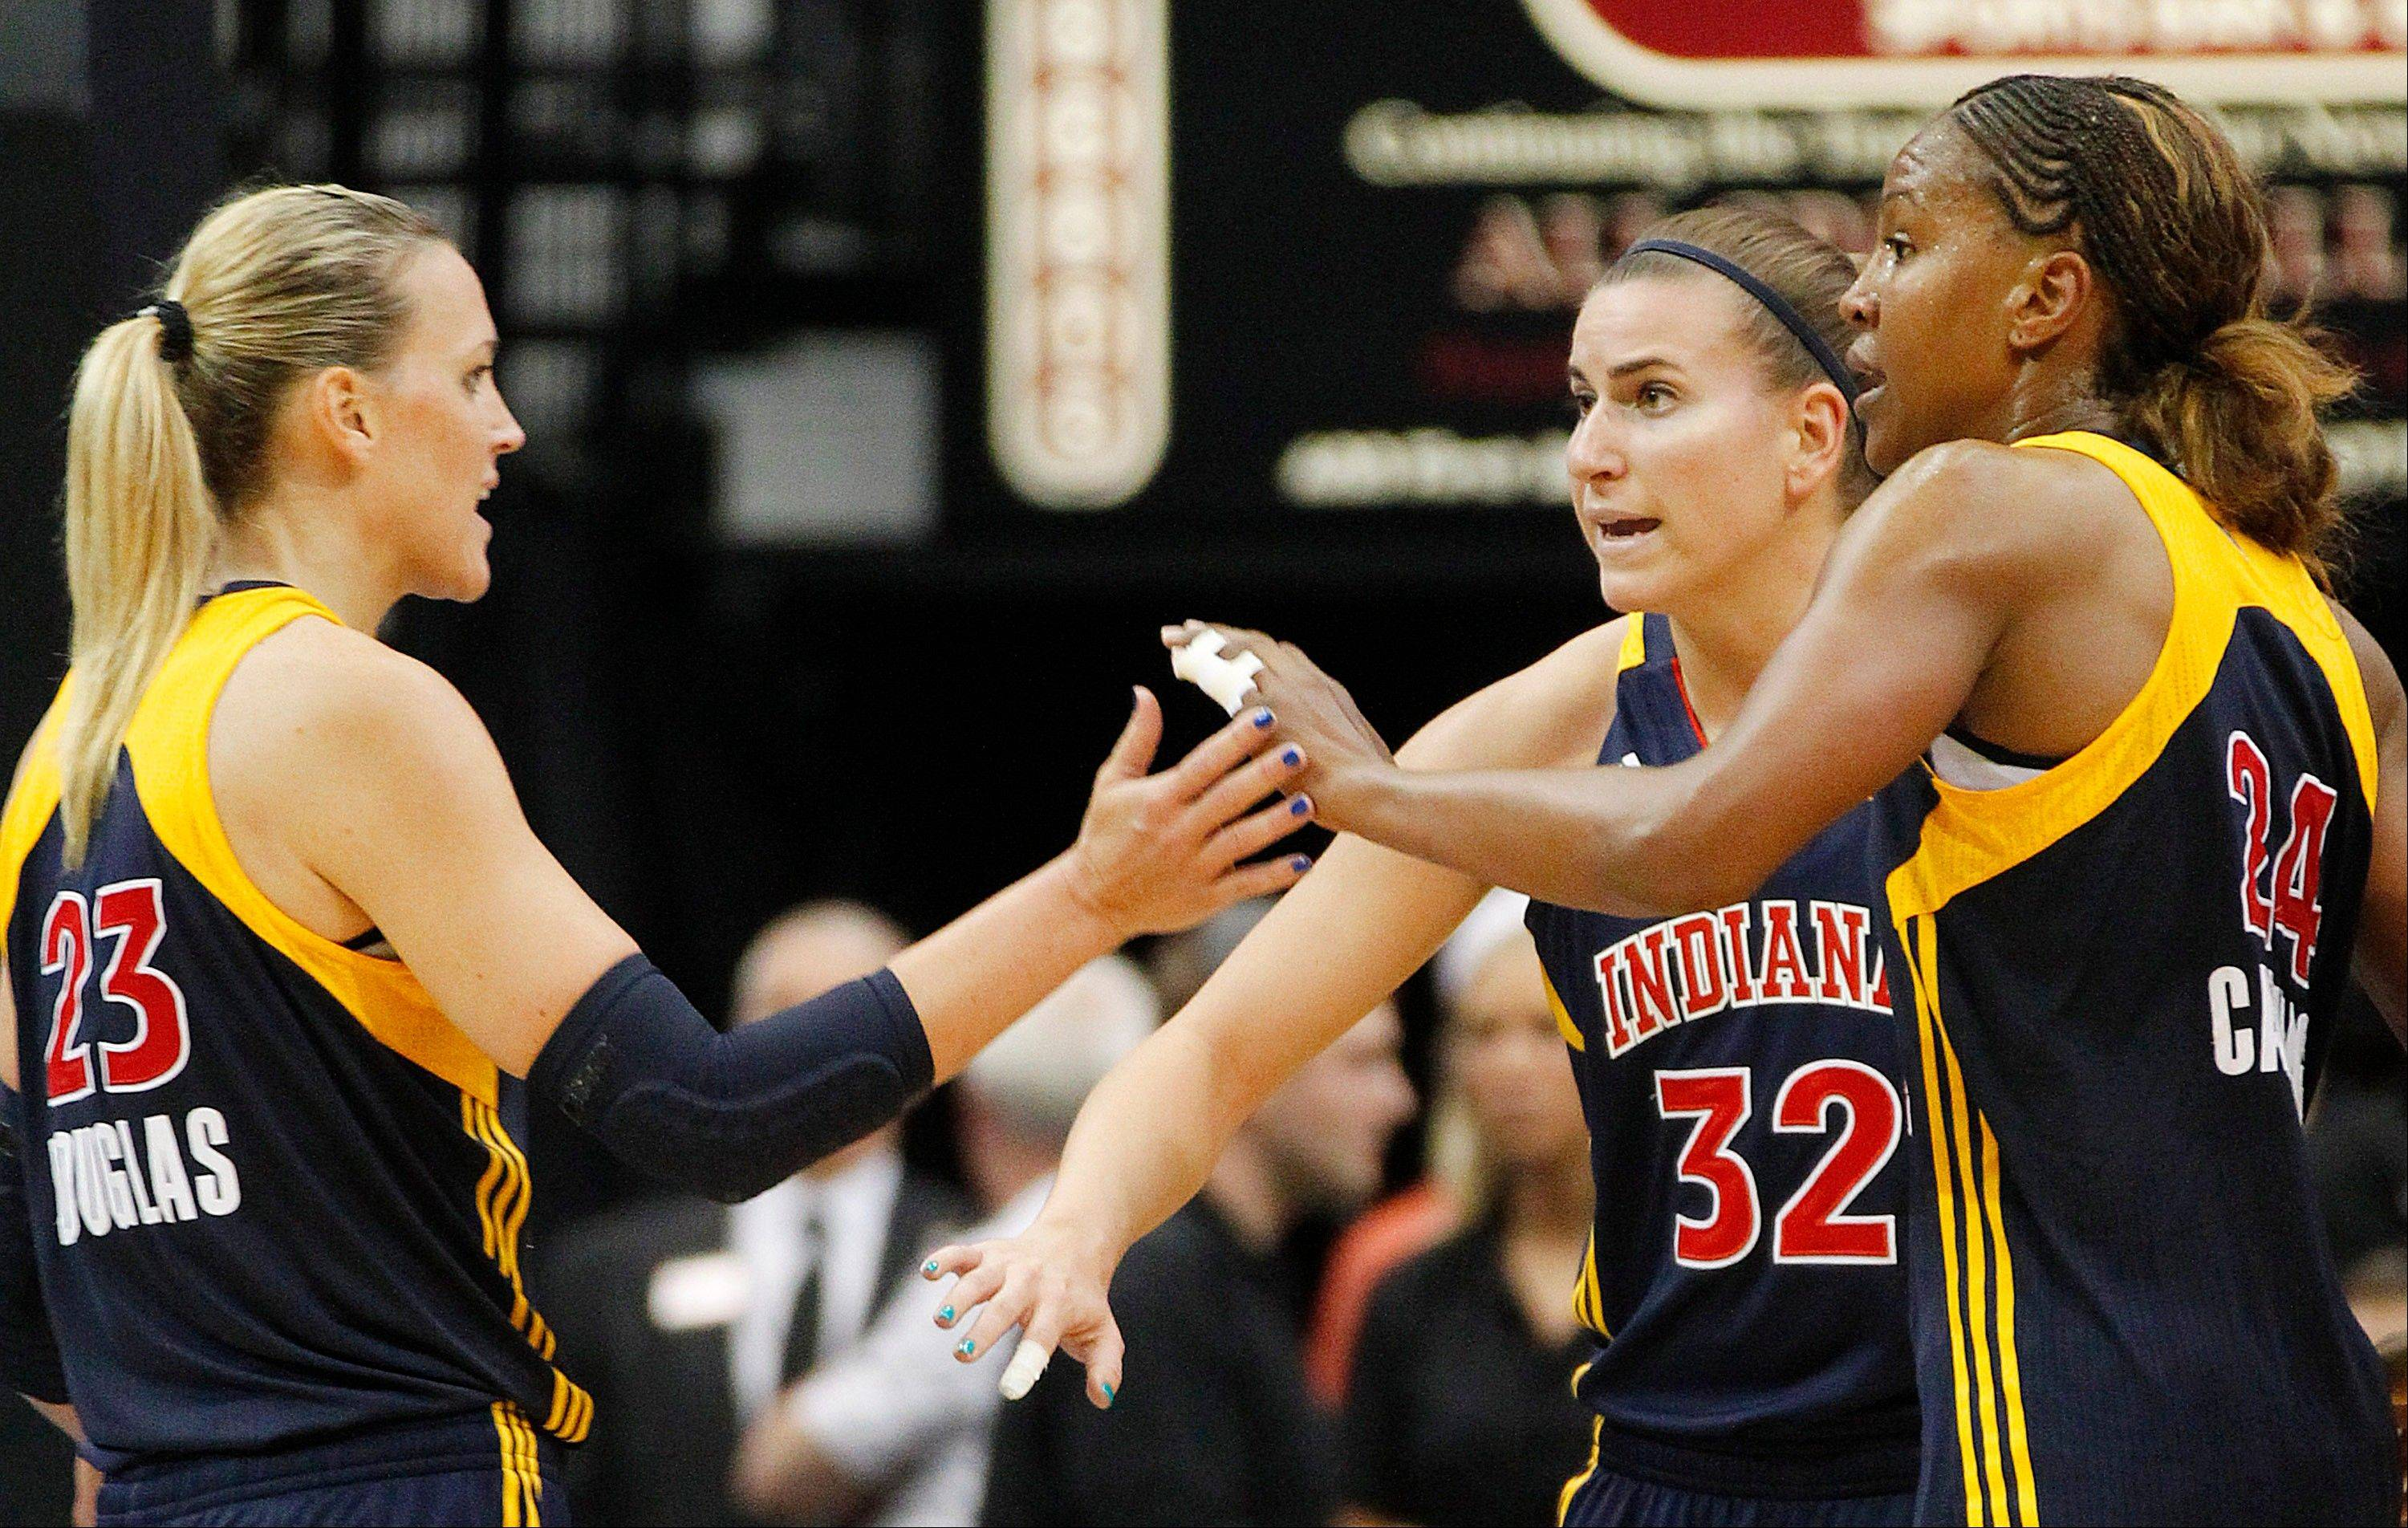 Indiana Fever forward Katie Douglas, left, is congratulated by teammates Jeanette Pohlen (32) and Tamika Catchings in a recent game against the Minnesota Lynx. Catchings is the leading vote-getter for the WNBA All-Star Game.